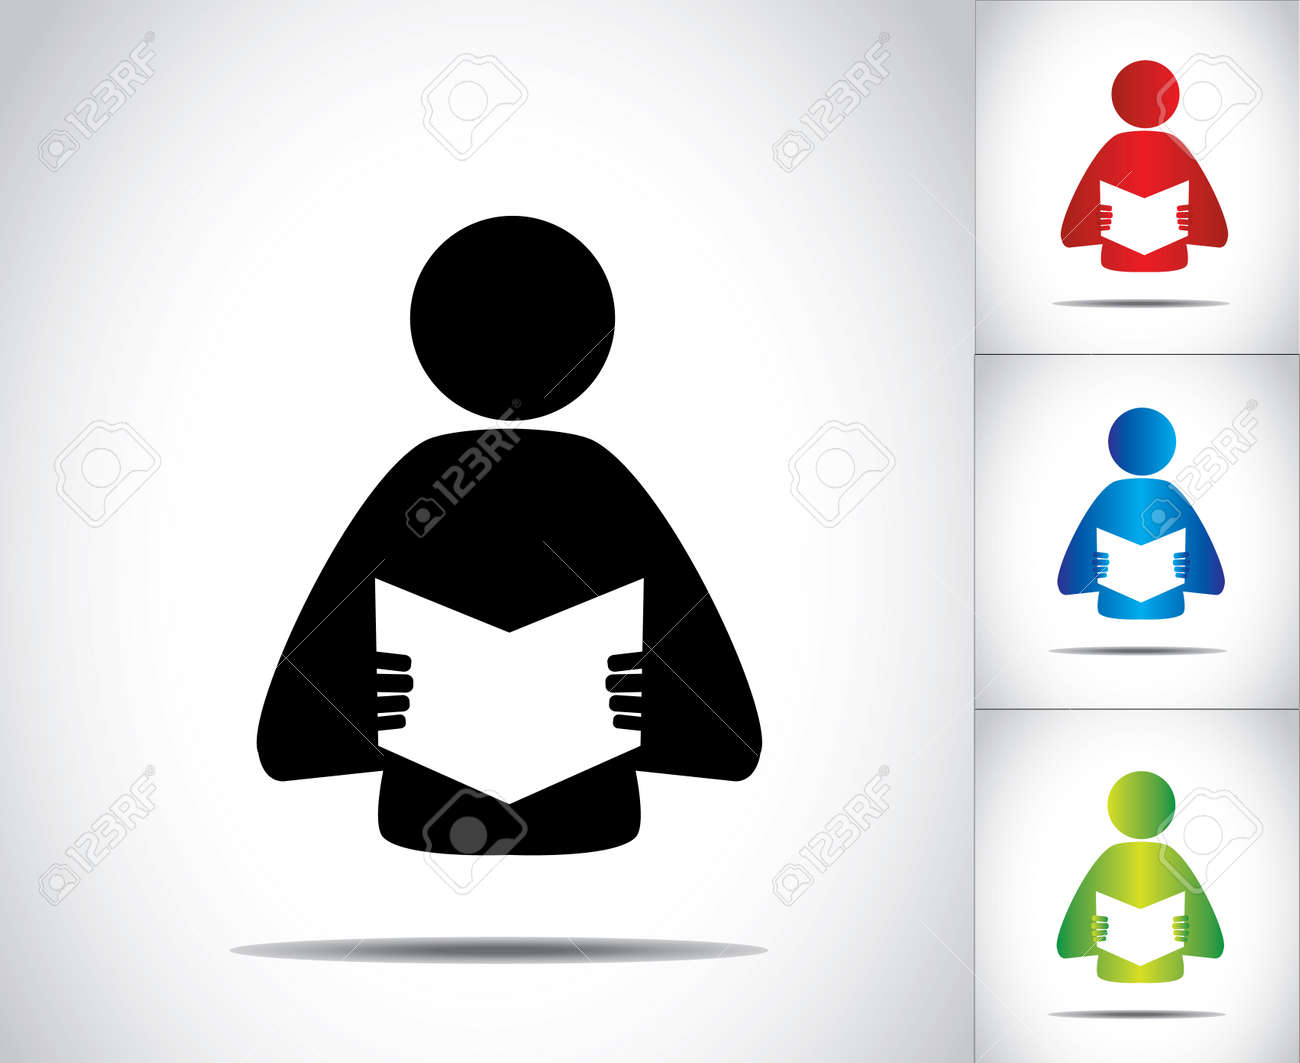 a male person reading an open book concept illustration symbol vector a male person reading an open book concept illustration symbol colorful man studying literature or novel collection set